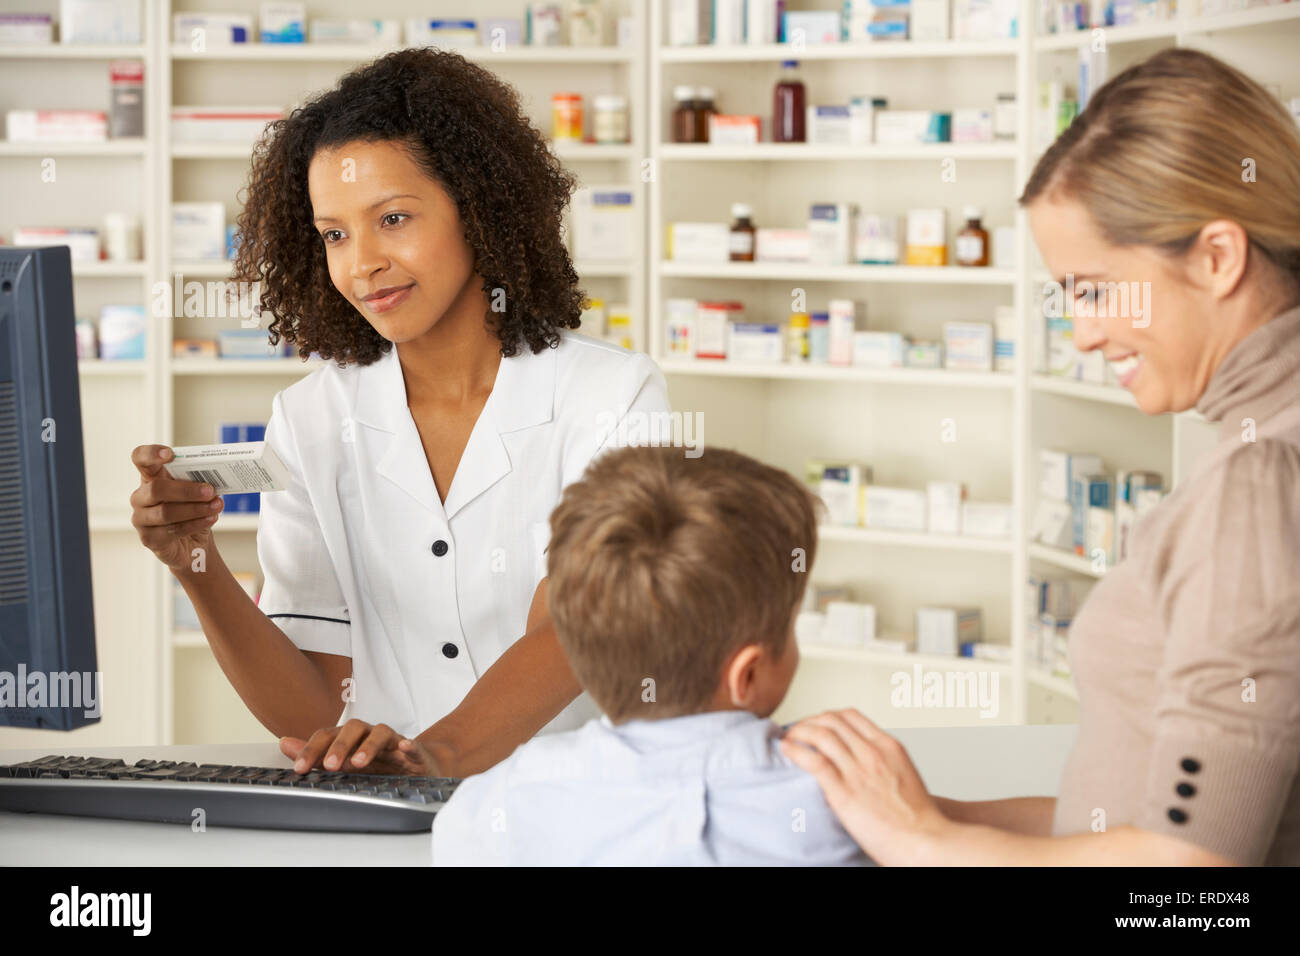 old american pharmacy stock photos old american pharmacy stock pharmacist in pharmacy mother and child stock image